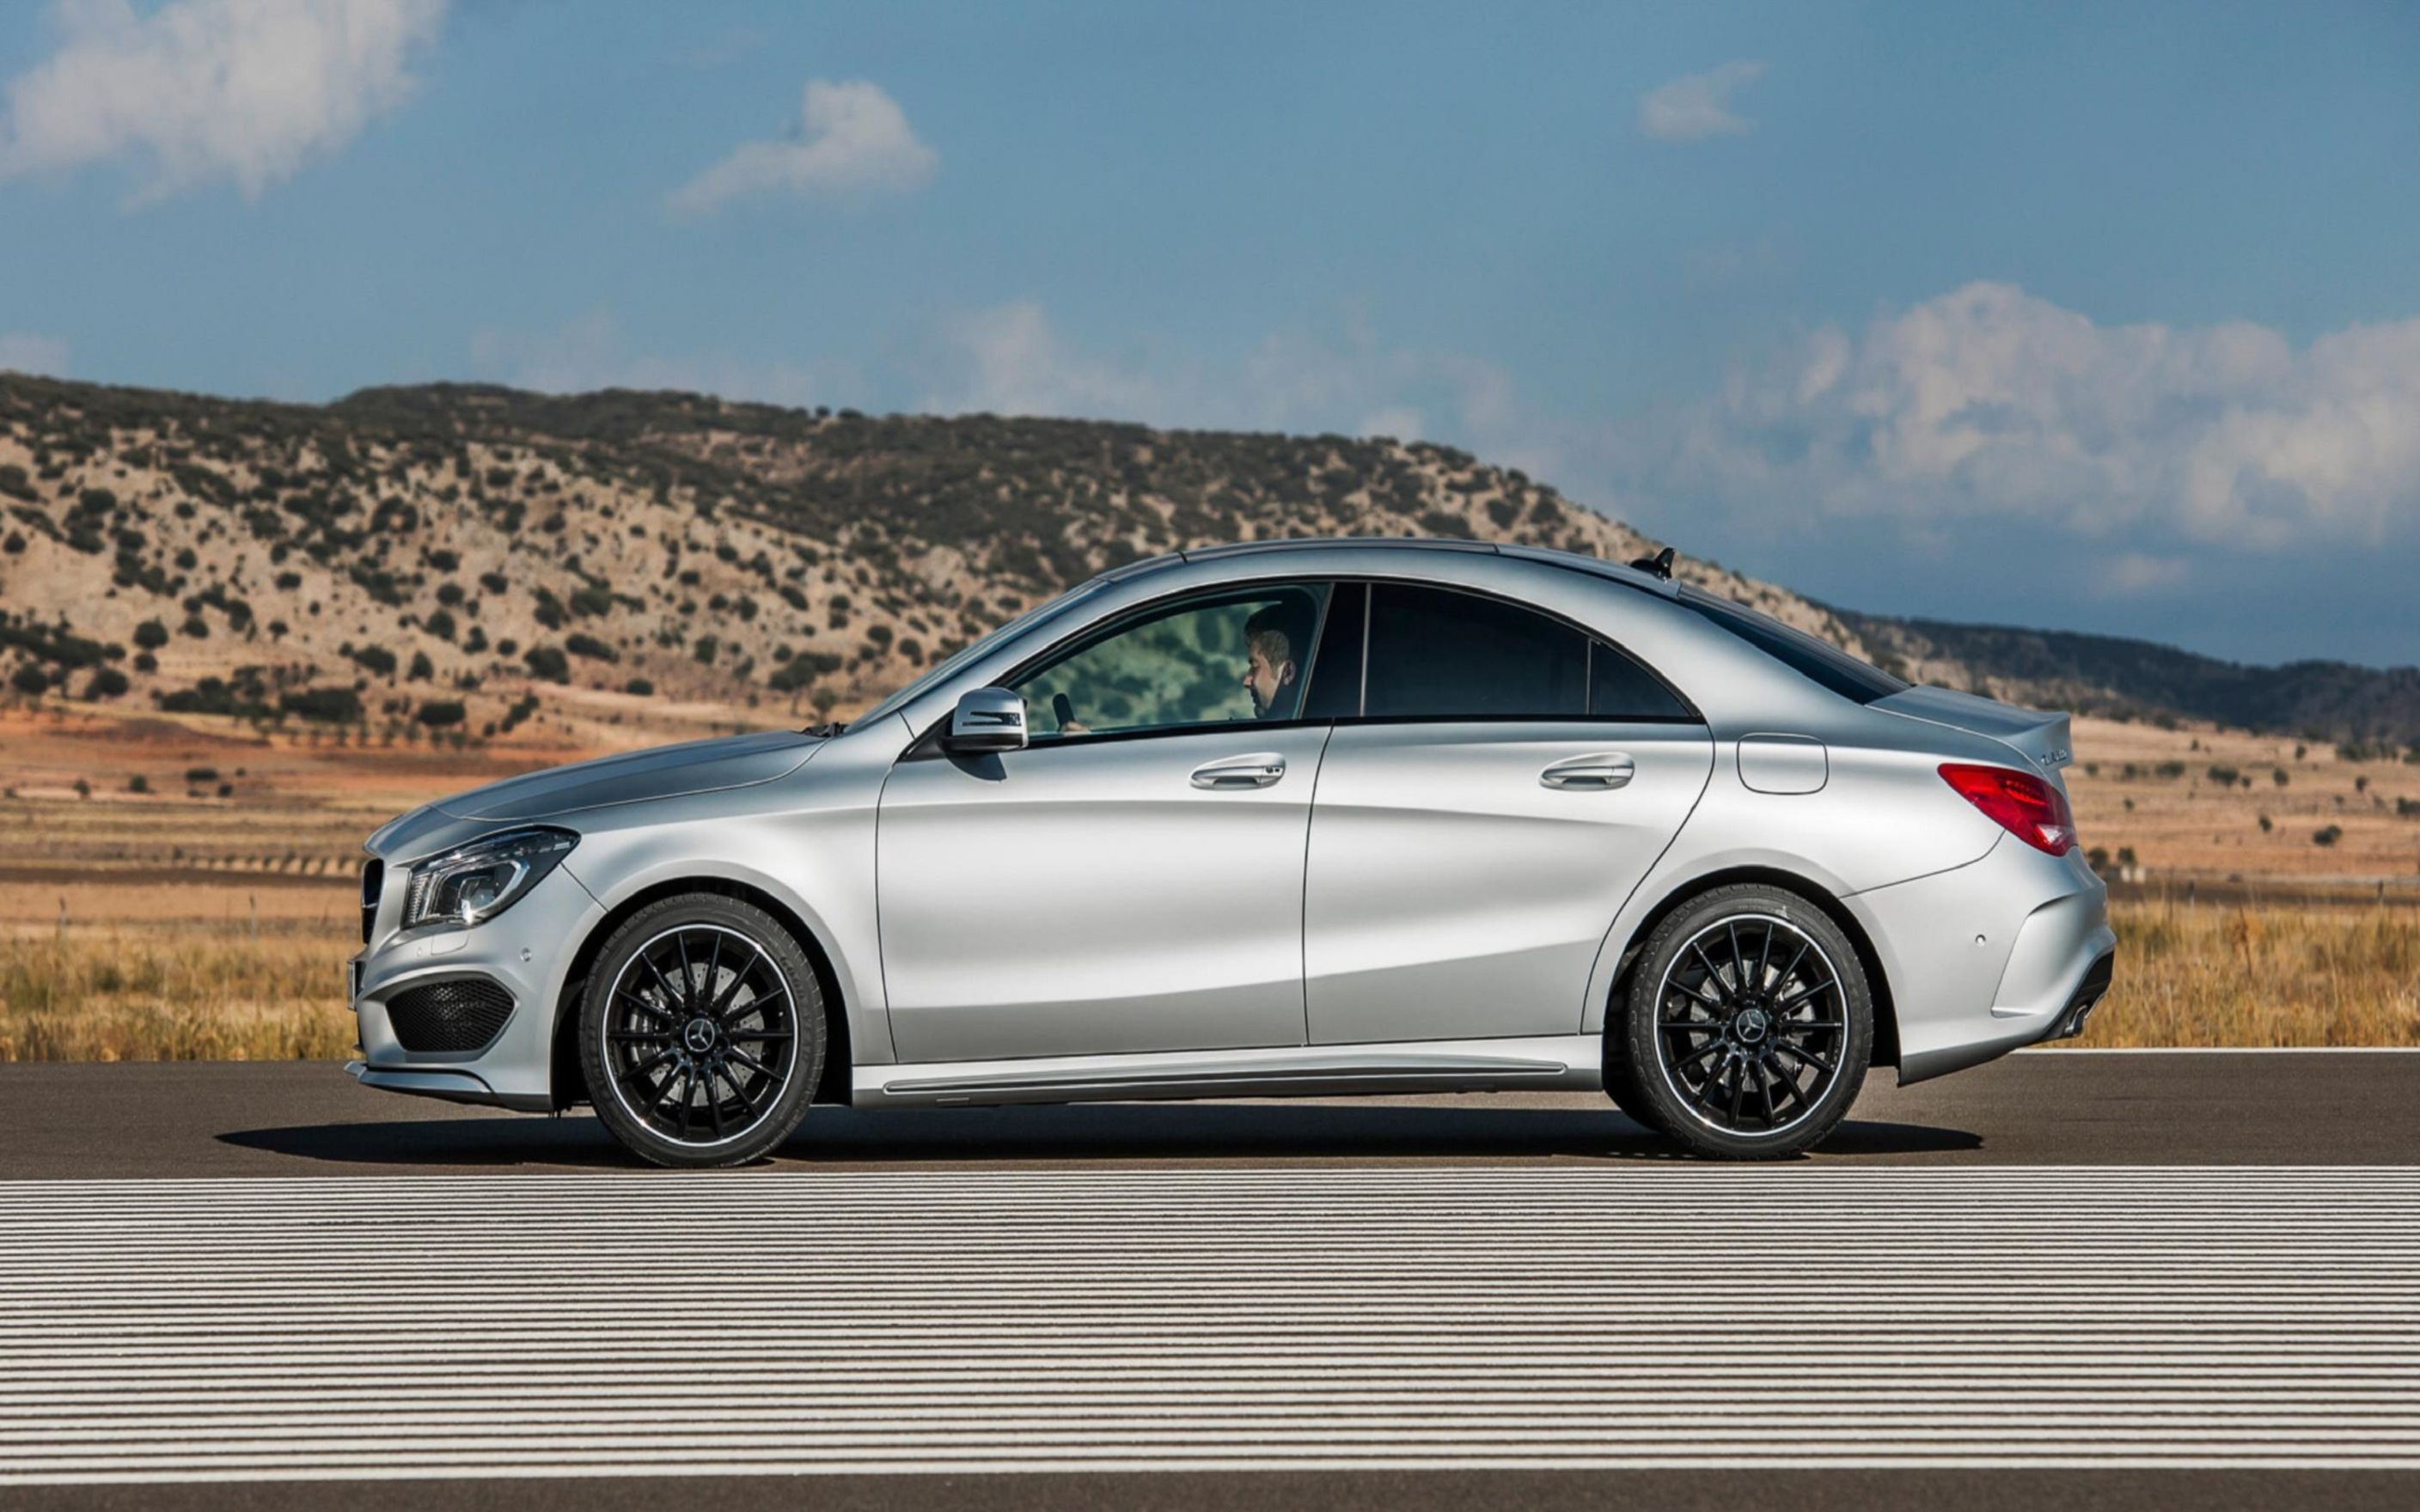 Download free HD Mercedes Benz Cla Class Digital Wallpaper, image